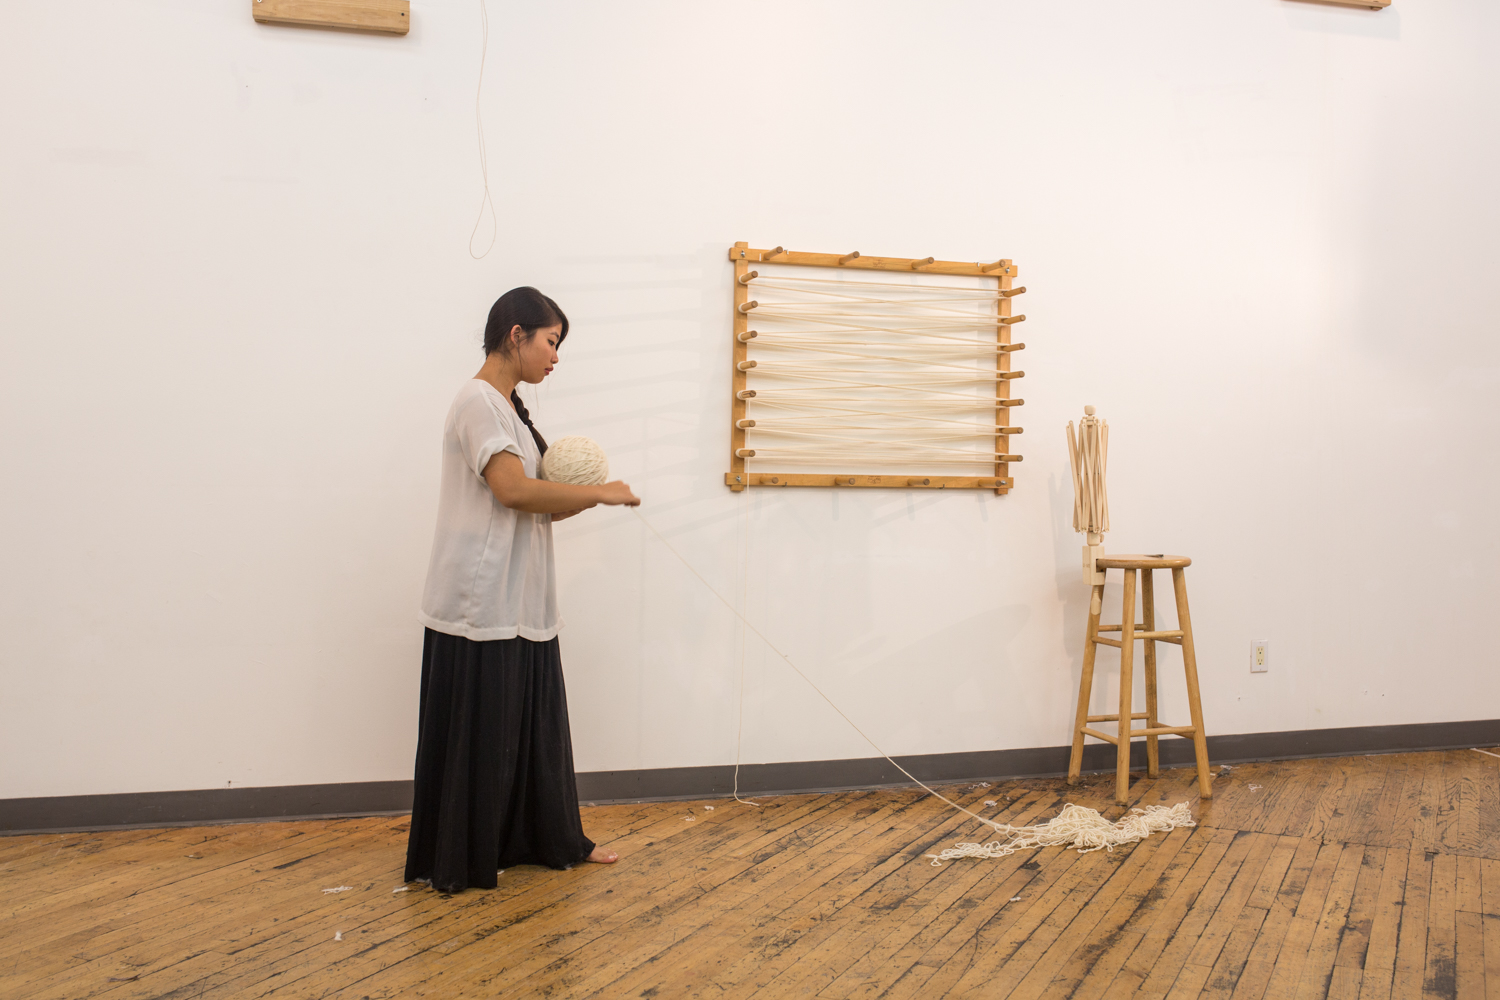 The artist wraps the untangled yarn onto the ball in her hand. Only a small amount of knotted yarn is left.